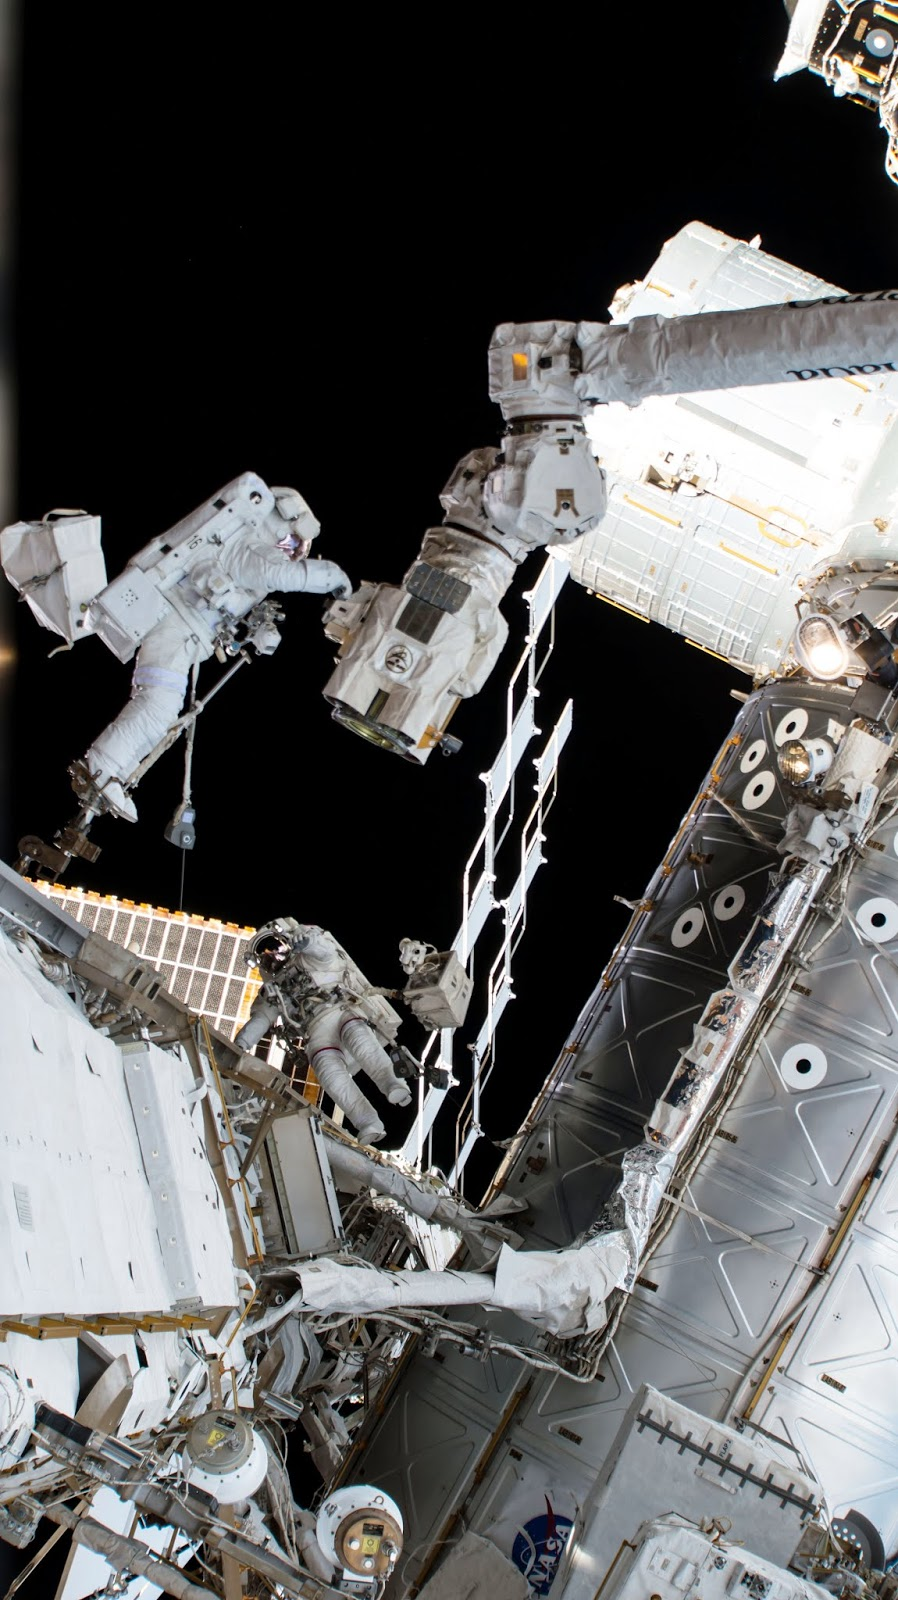 astronauts outside the Space Station in space